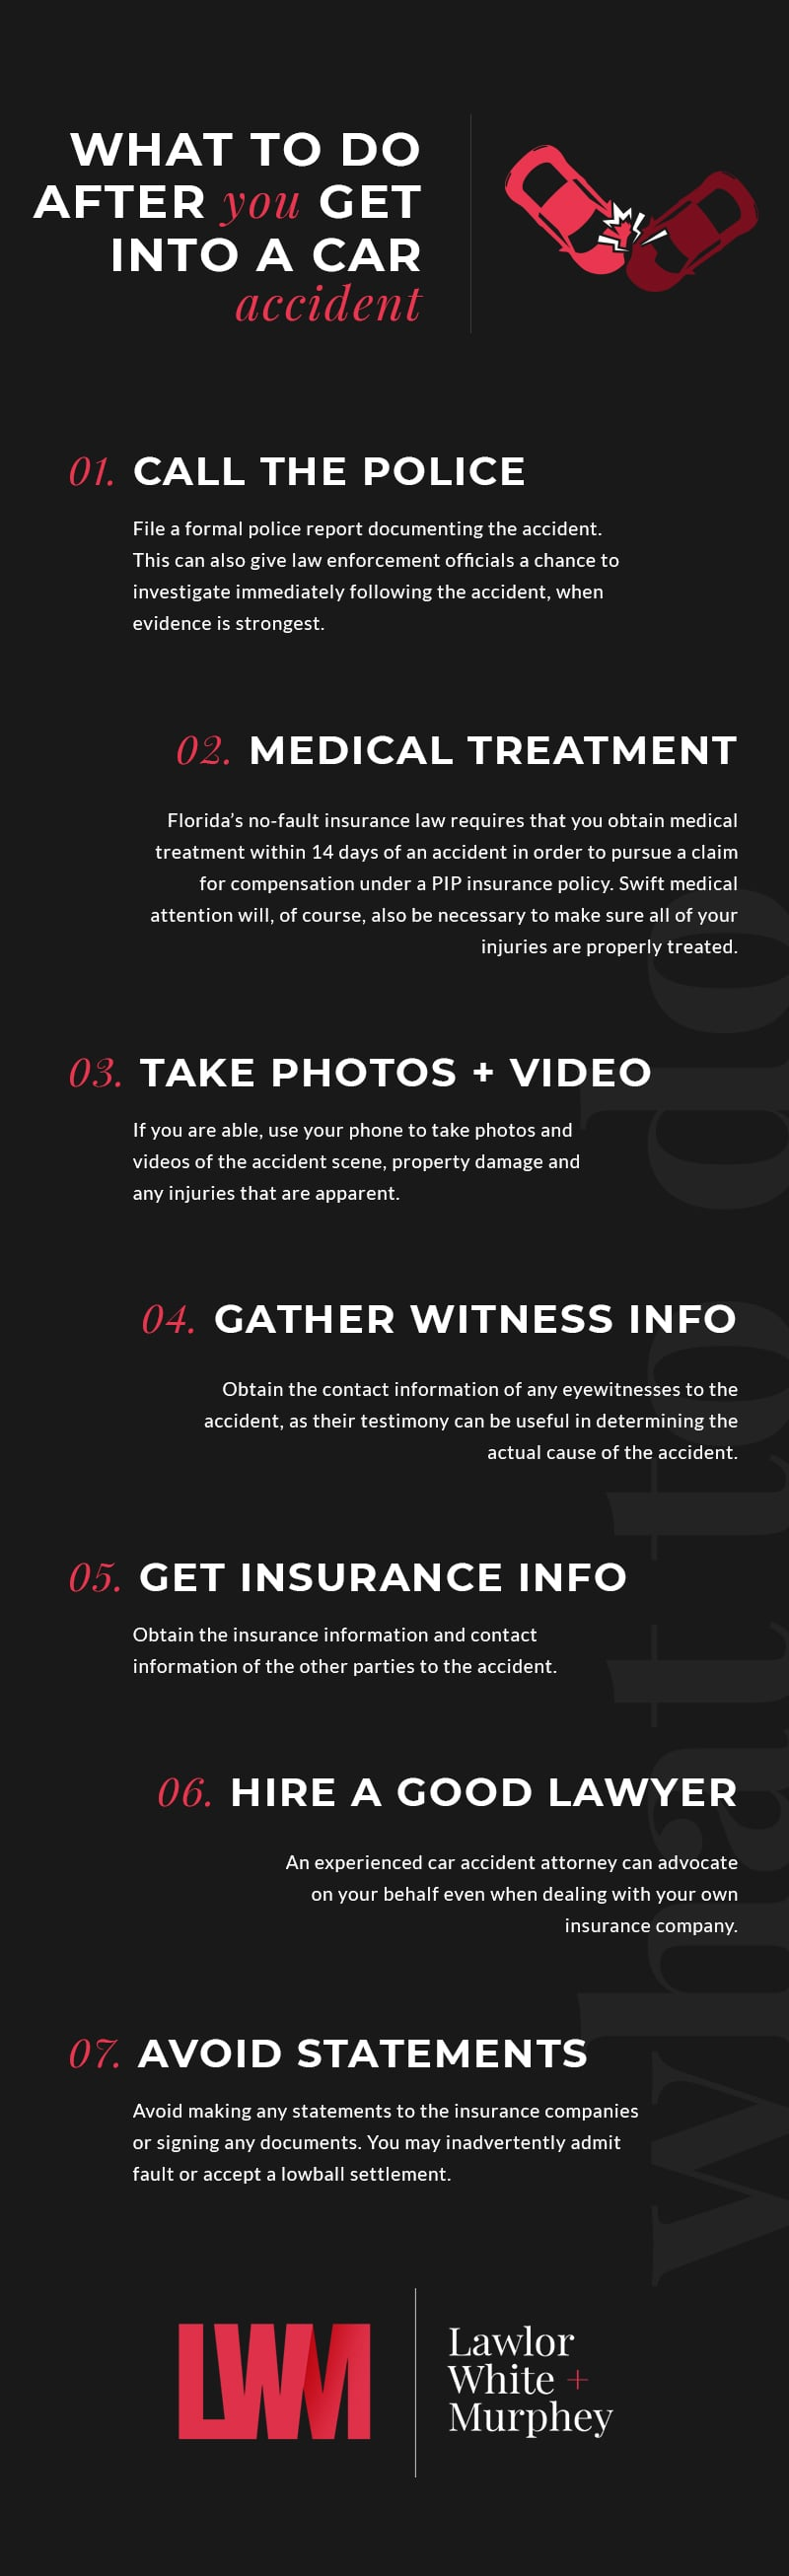 Fort Lauderdale Car Accident Lawyers - What To Do Infographic